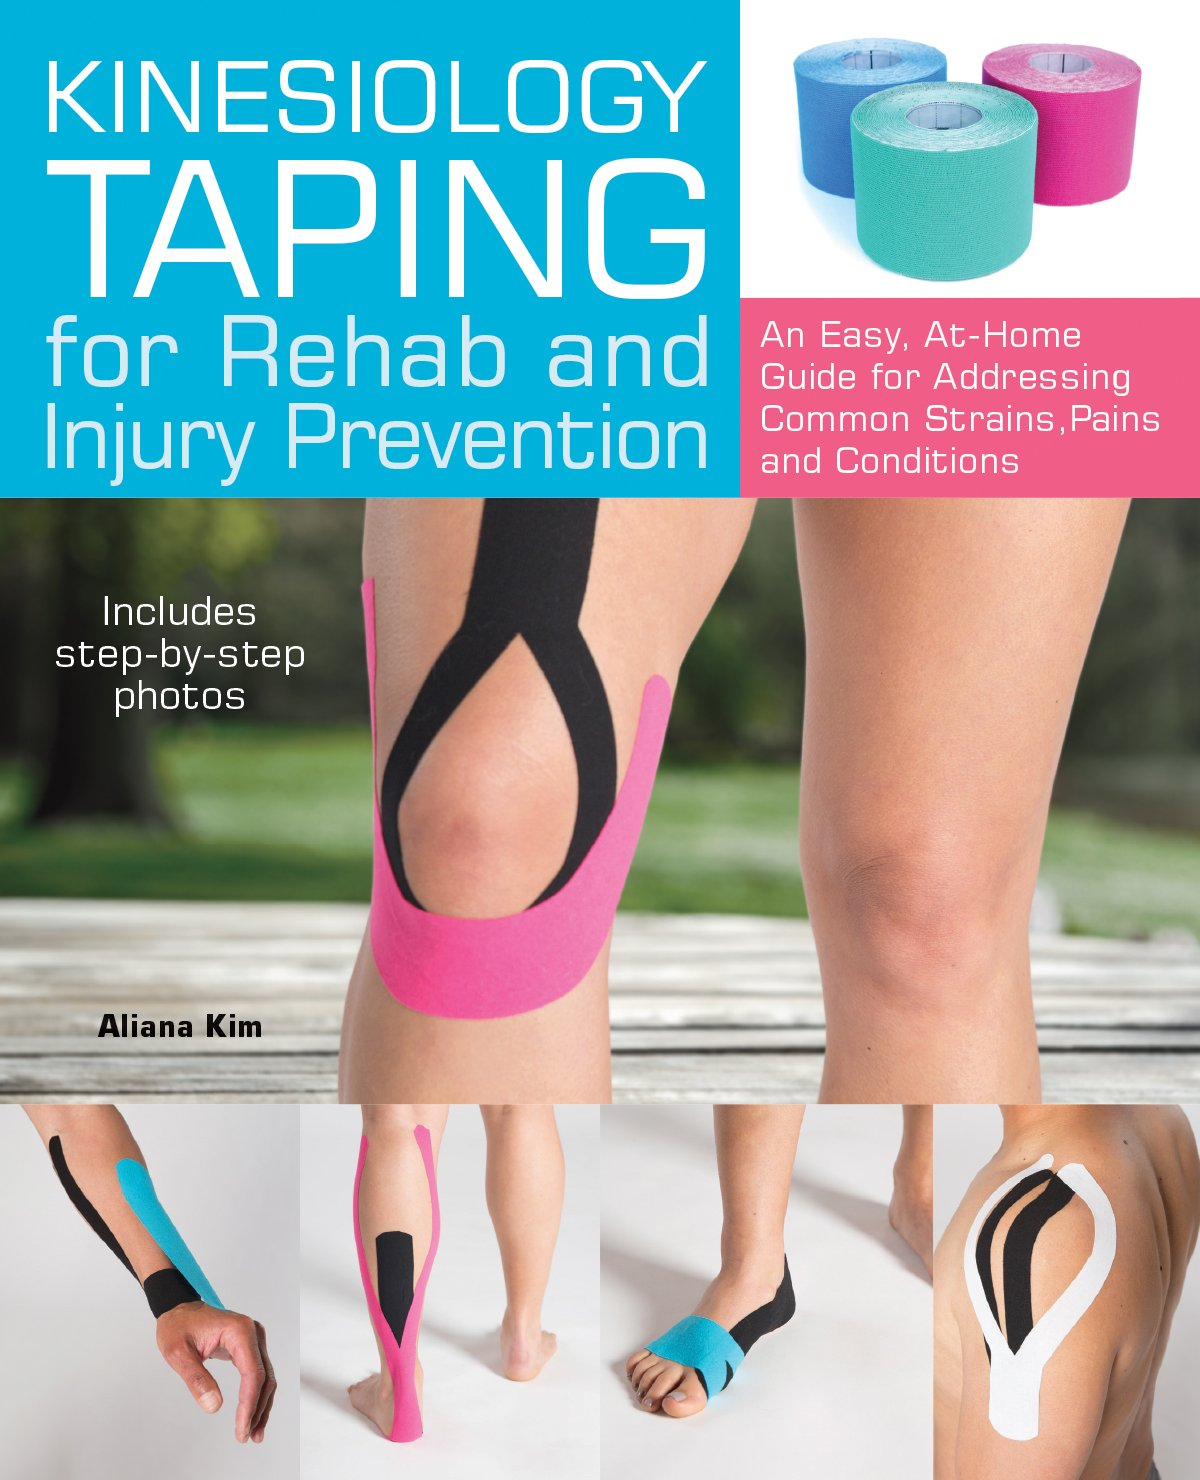 e1de1bcf93c Kinesiology Taping for Rehab and Injury Prevention  An Easy